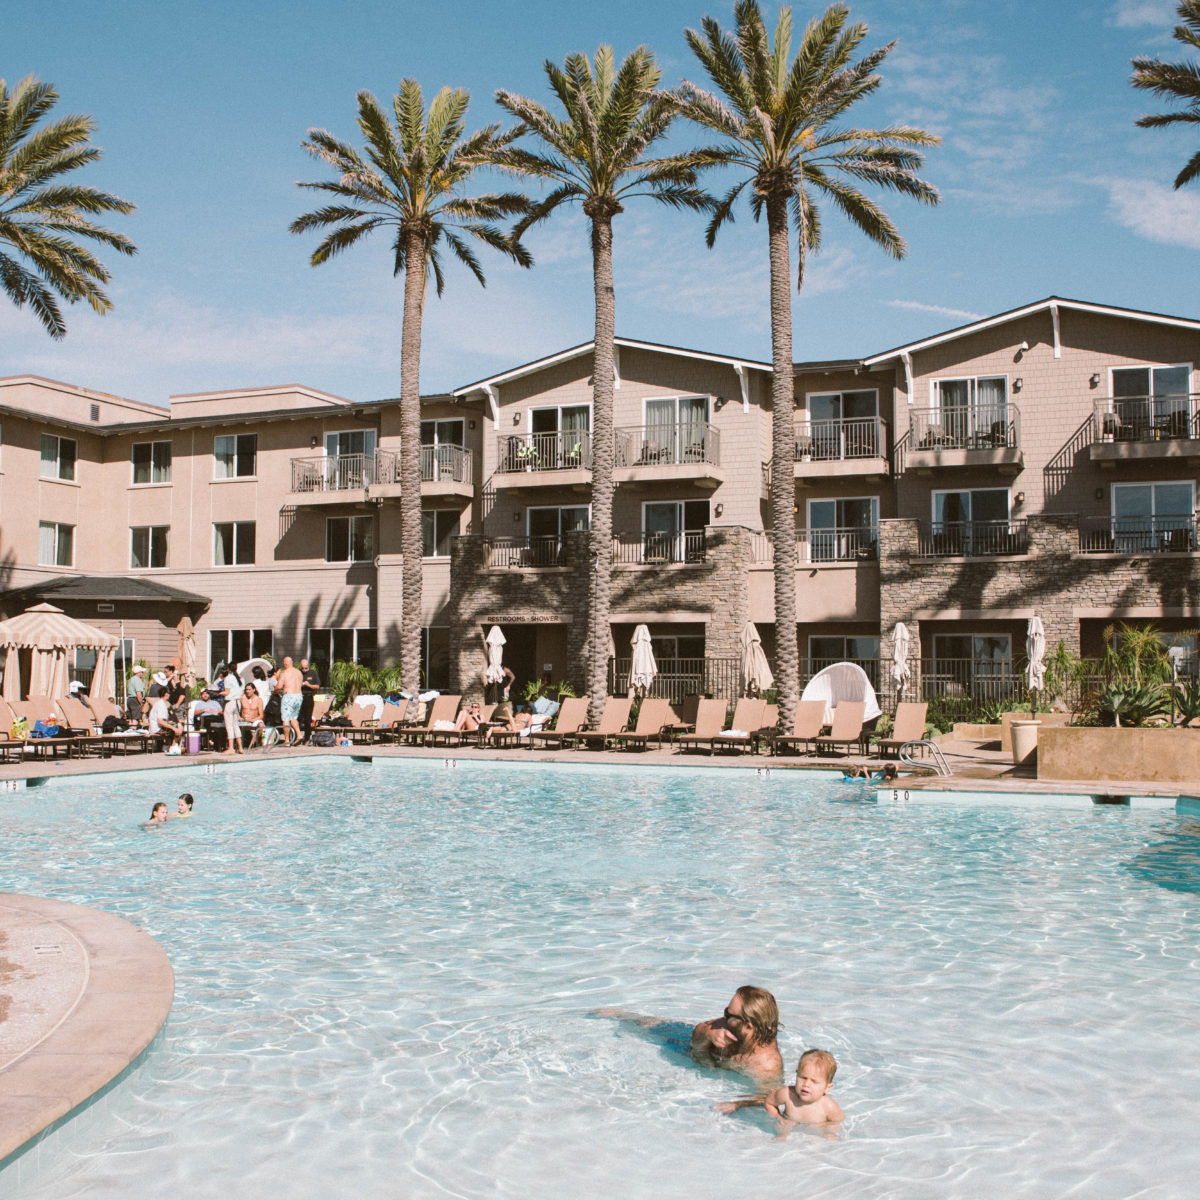 Staycation at Cape Rey Carlsbad Hotel